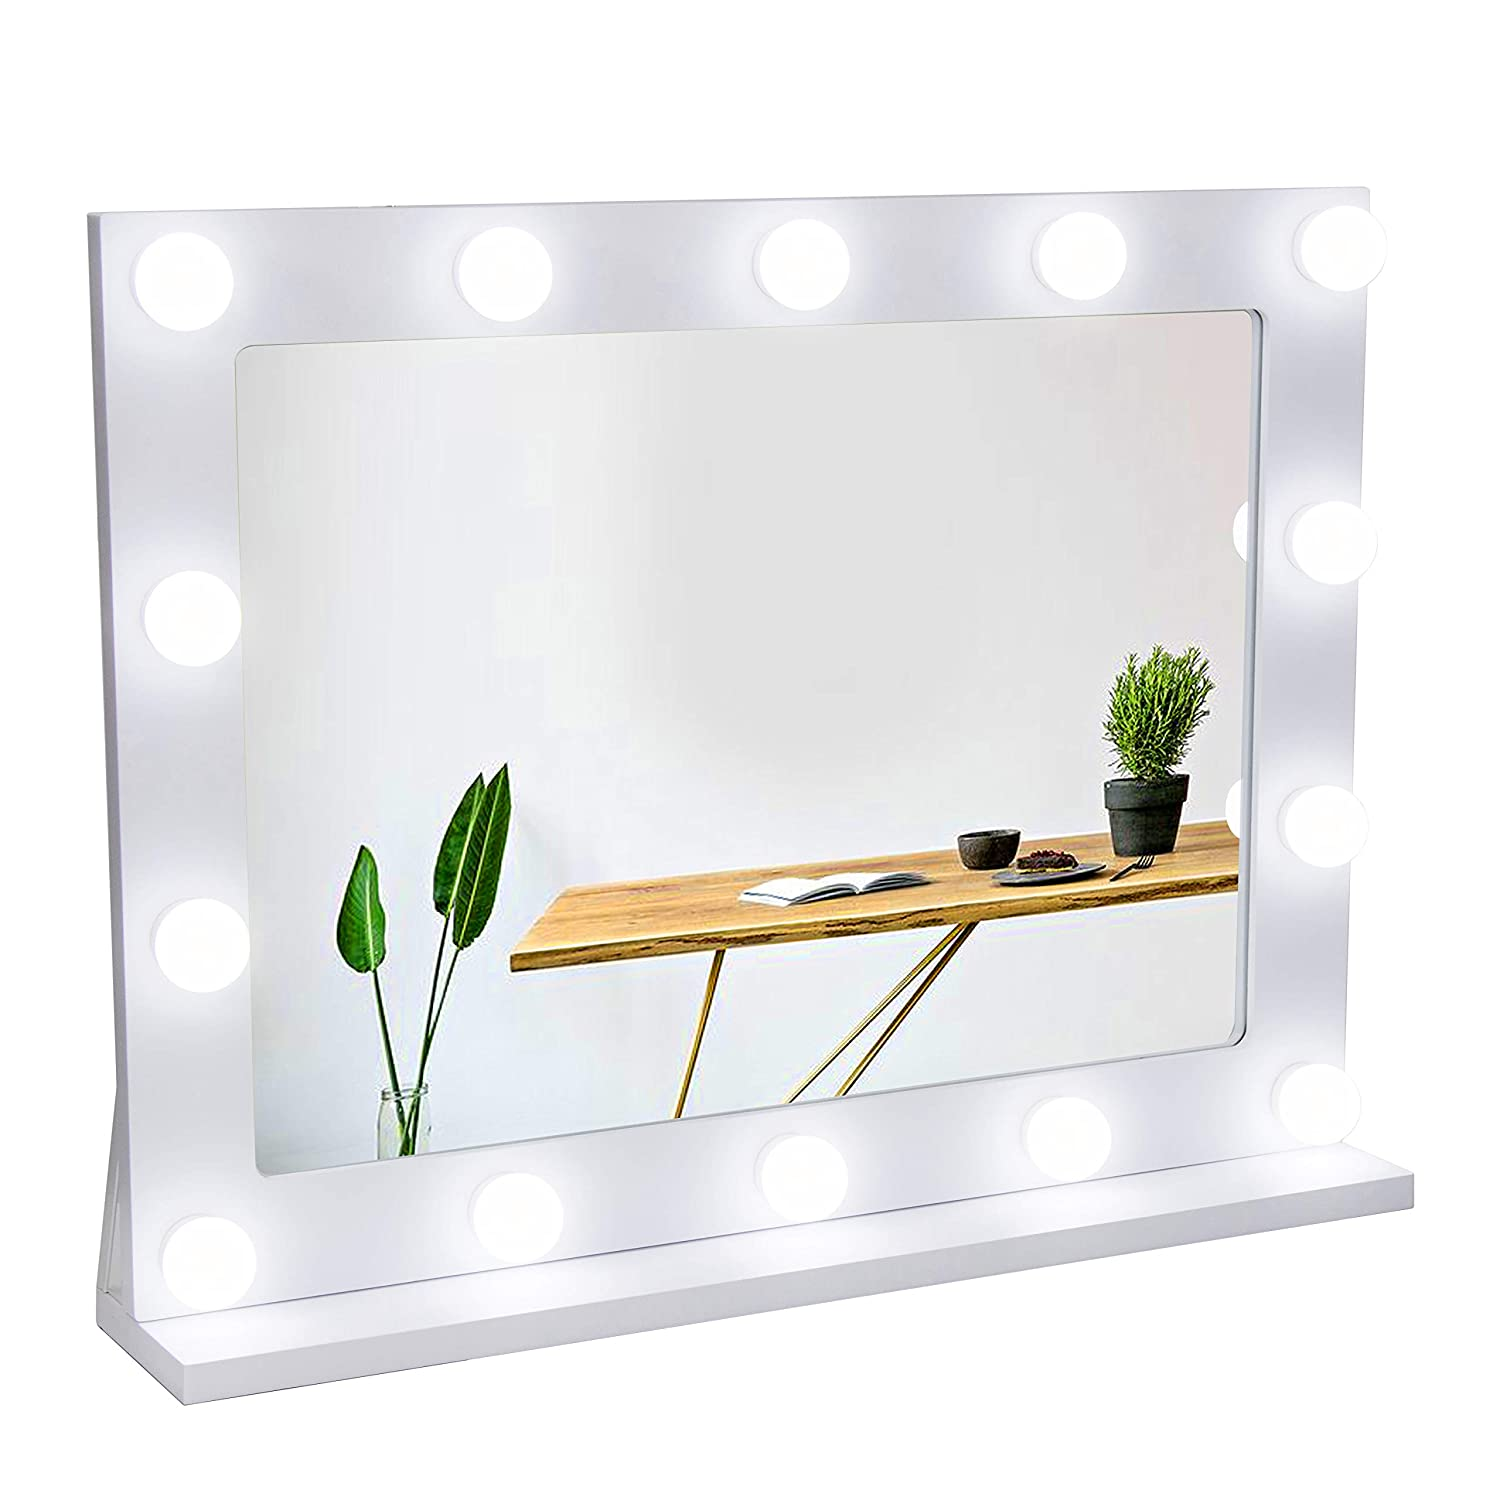 Waneway Vanity Mirror with Lights, Hollywood Lighted Makeup Mirror with 14 Dimmable LED Bulbs for Dressing Room Bedroom, Tabletop or Wall-Mounted, Slim Wooden Frame Design, White